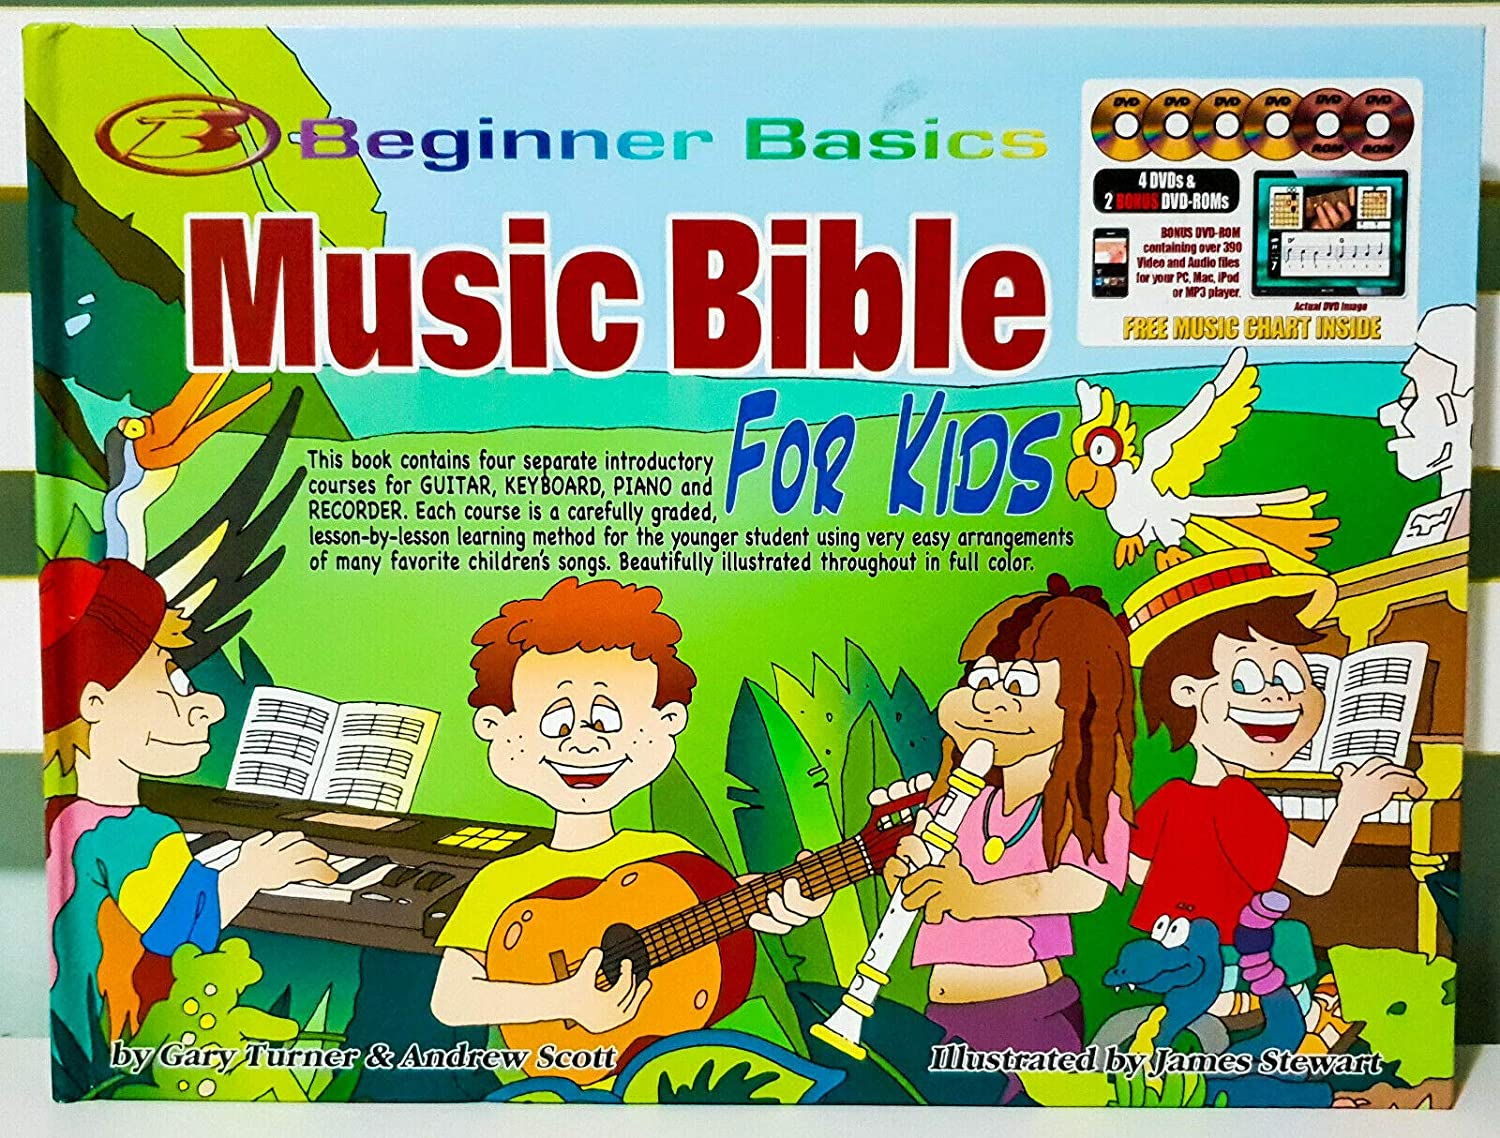 Piano Learn To Play Guitar Childrens Music Bible DVDs Keyboard and Recorder